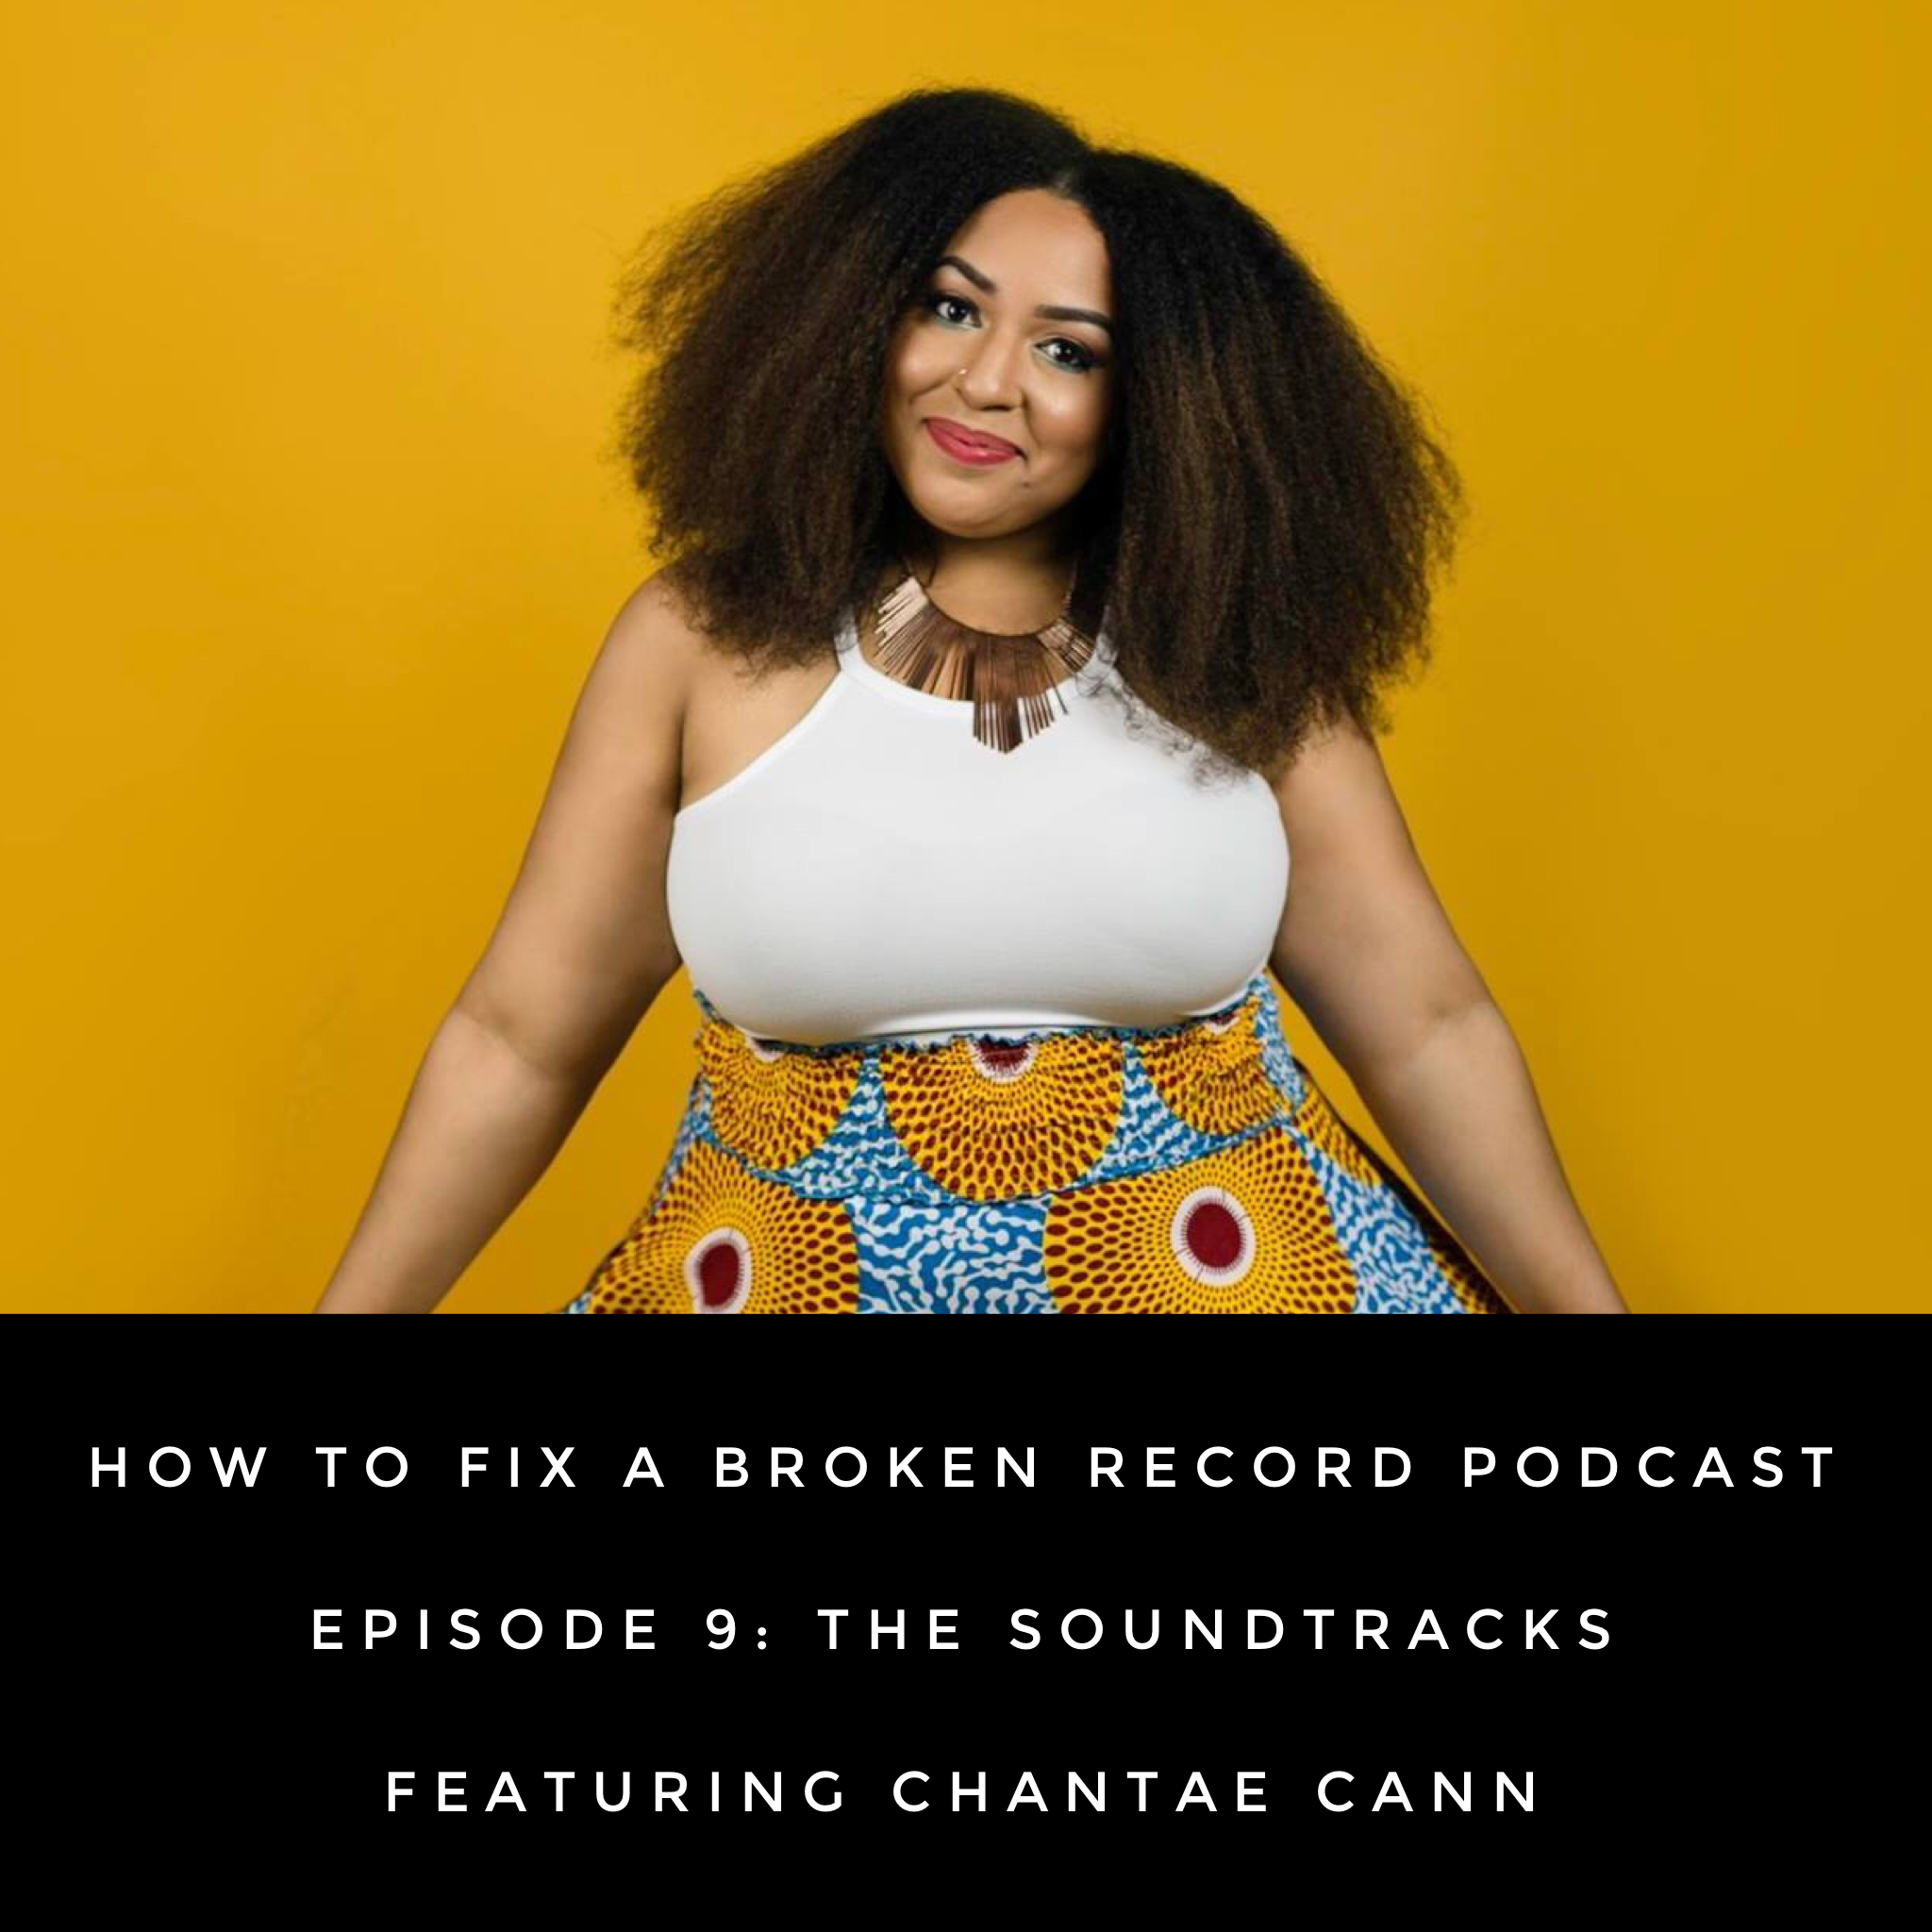 "Each Part of the book  How to Fix a Broken Record  has a feature called the Soundtrack where Amena writes about the albums that influenced her in the areas of Love and Be Yourself, Dating, Marriage, Lessons in Adulting, Ctrl+Alt+Surrender, Home and Searching for the Groove.  In this episode, Amena talks the soundtracks of the book with jazz soul vocalist and songwriter Chantae Cann. Listen in as Amena and Chantae discuss the albums that inspire them.      Show Notes:    Acoustic Soul  - India.Arie   I Am...Sasha Fierce  - Beyonce   A Love Supreme  - John Coltrane   The College Dropout  - Kanye West   Pages Of Life- Chapters I & II  - Fred Hammond   The Wiz soundtrack    A Seat At The Table  - Solange   Sol Empowered  - Chantae Cann   Innervisions  - Stevie Wonder      About Chantae:   Chantae Cann is the charismatic influence with a voice that transcends through time. With the release of her debut album  ""Journey to Golden""  in March 2016 at #1 on the iTunes Jazz Charts and #7 on the Jazz Billboard Charts, Chantae's solo career has started off on a promising note.  Chantae Cann's second studio album    Sol Empowered    released October 13, 2017 and landed a #8 spot on the Jazz Billboard Charts.   Sol Empowered   finds the artist in a positive space, as Ms. Cann states she has most recently been inspired in the areas of knowing, valuing and appreciating her own self-worth, and she desires to motivate others to do the same.  Lyrically, this is a love letter from Chantae to her listeners with an in depth look at her evolution as an artist, and most importantly who she has come to be as a person.   Sol Empowered   is intentional and deliberate, yet free-spirited.    For more info on Chantae Cann, visit  www.chantaecann.com .  Released December 19, 2017.  Listen to the episode on  iTunes  and  Google Play ."